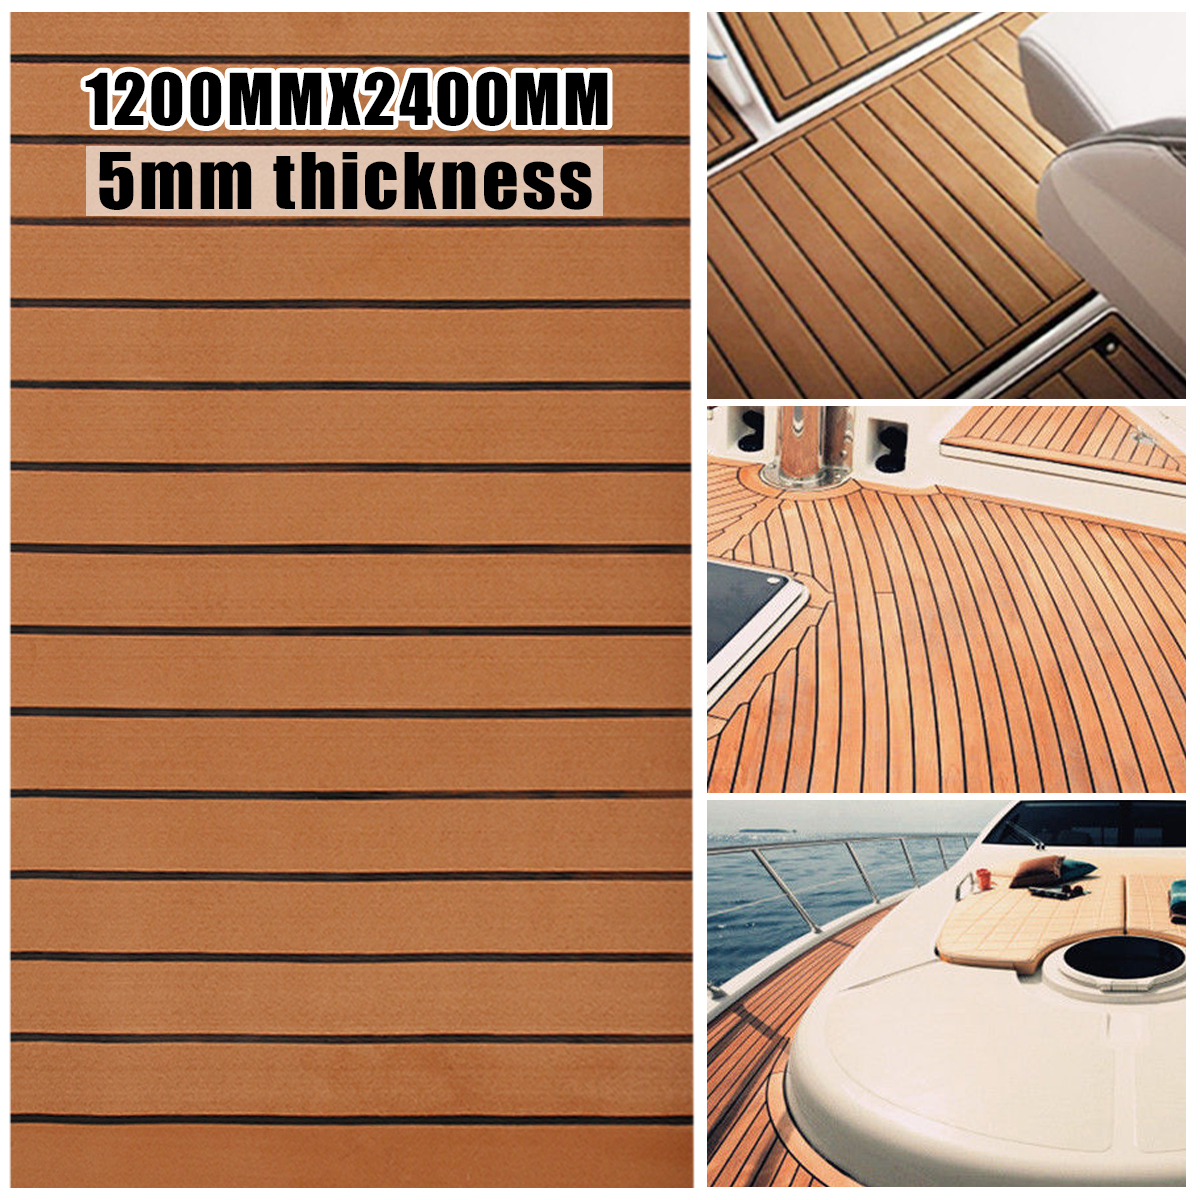 120cmx240cmx5mm Self Adhesive EVA Foam Faux Teak Sheet Boat Yacht Synthetic Teak Decking Brown and Black Wholesale-in RV Parts & Accessories from Automobiles & Motorcycles